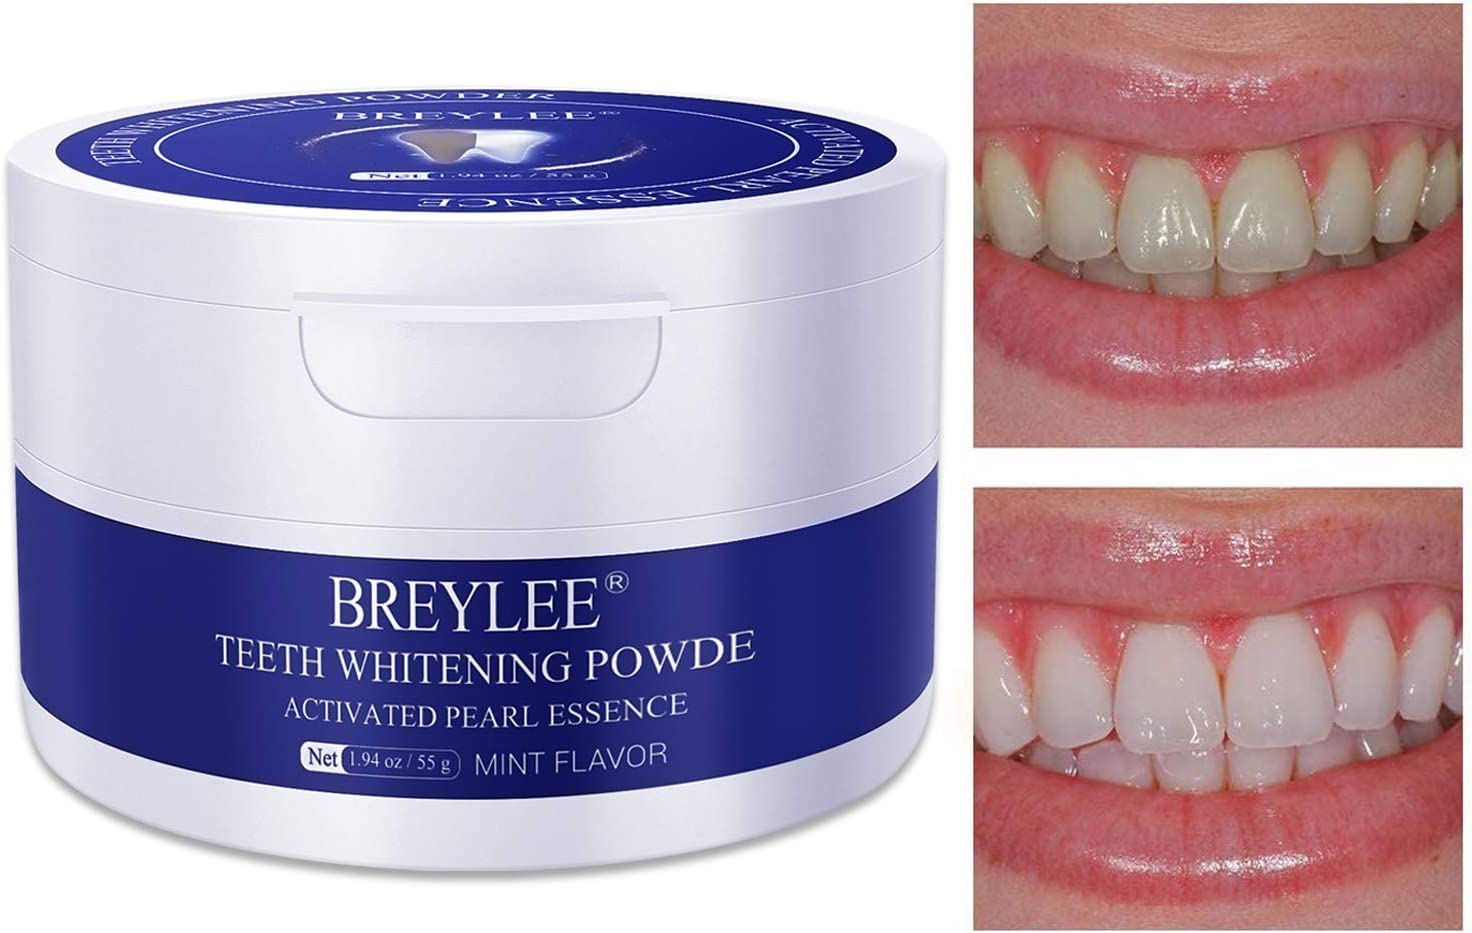 Teeth Whitening Powder BREYLEE Teeth Brightening Powder with Pearl Essence, Baking Soda for Removing Stain Caused by Coffee Wine Smoking Keeping Oral Fresh (55g, 1.94 oz) Only One Pack: Beauty